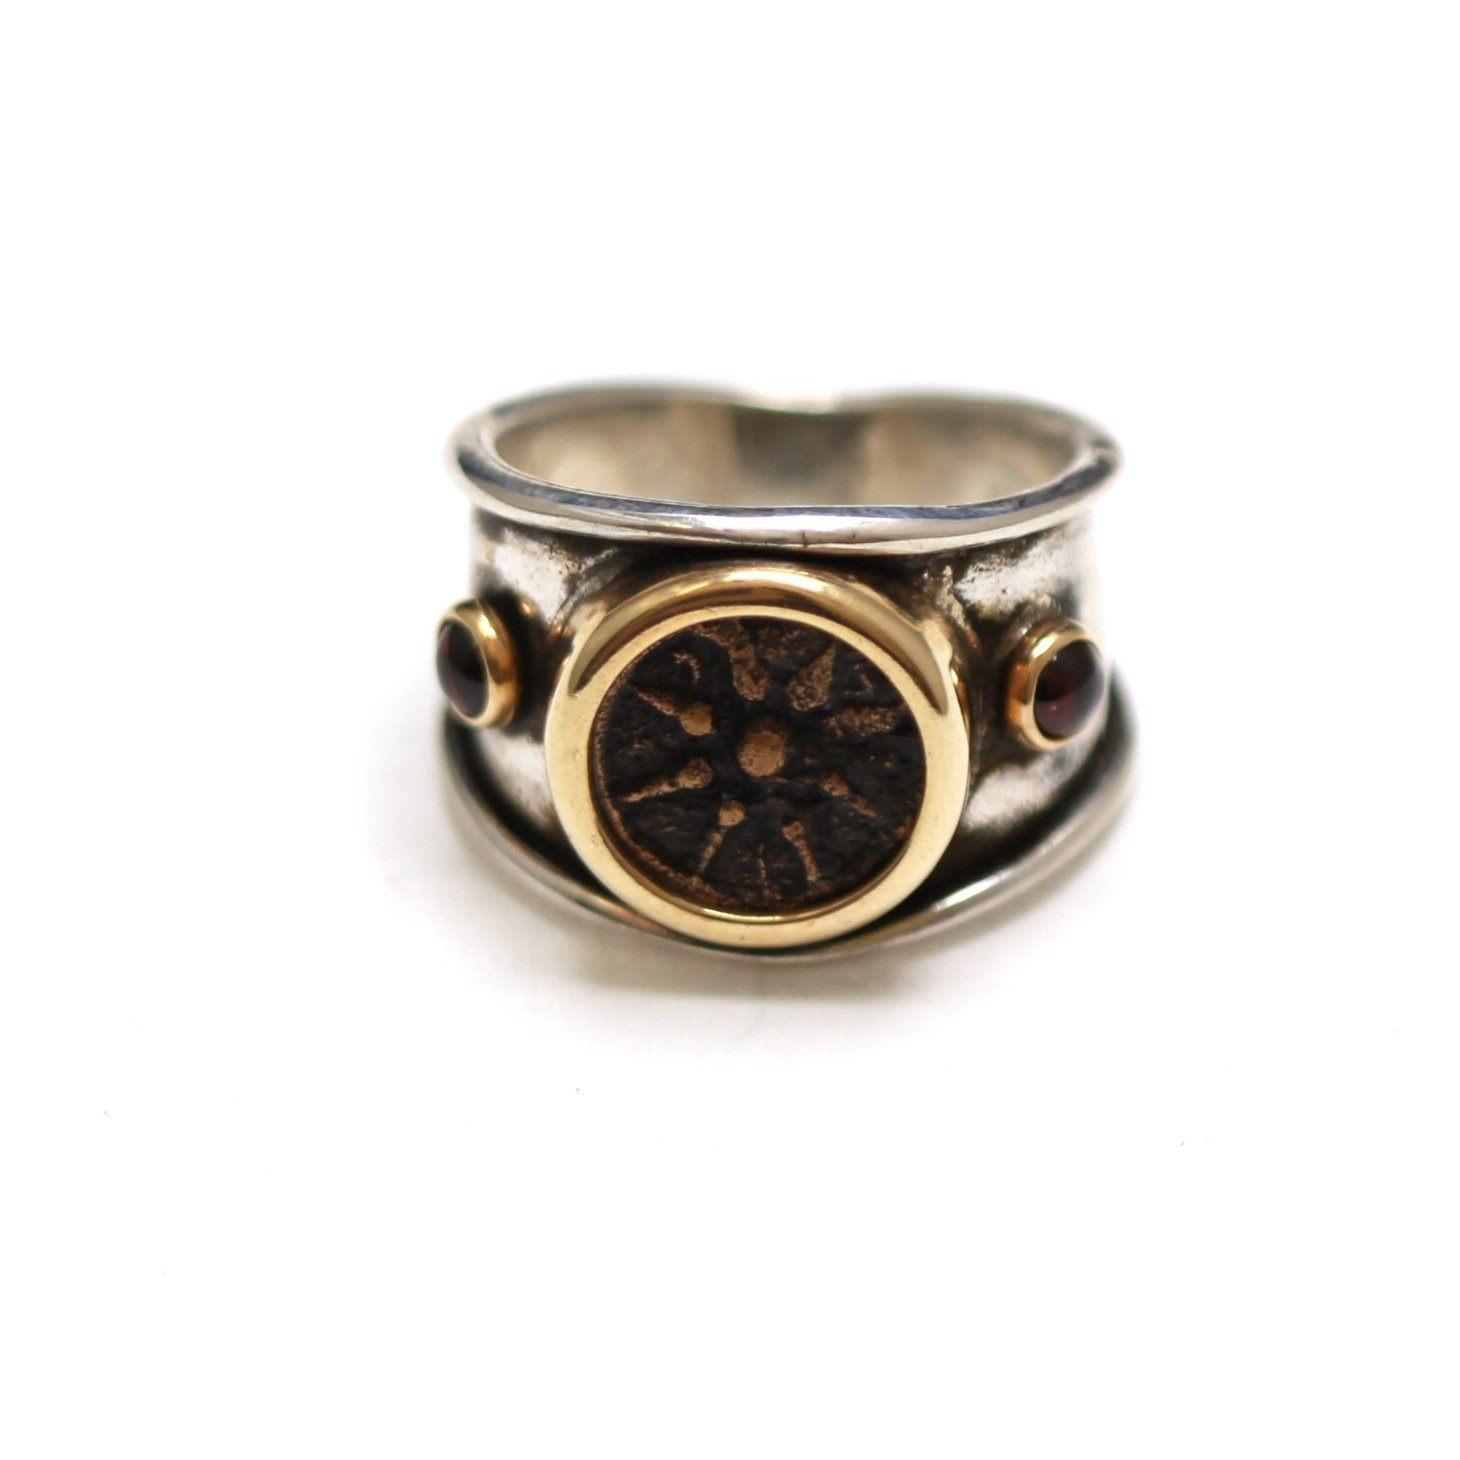 14K Gold Bezels, Garnet, Silver Ring, Widows Mite, Ancient Judaean Coin, ID13353 - Erez Ancient Coin Jewelry